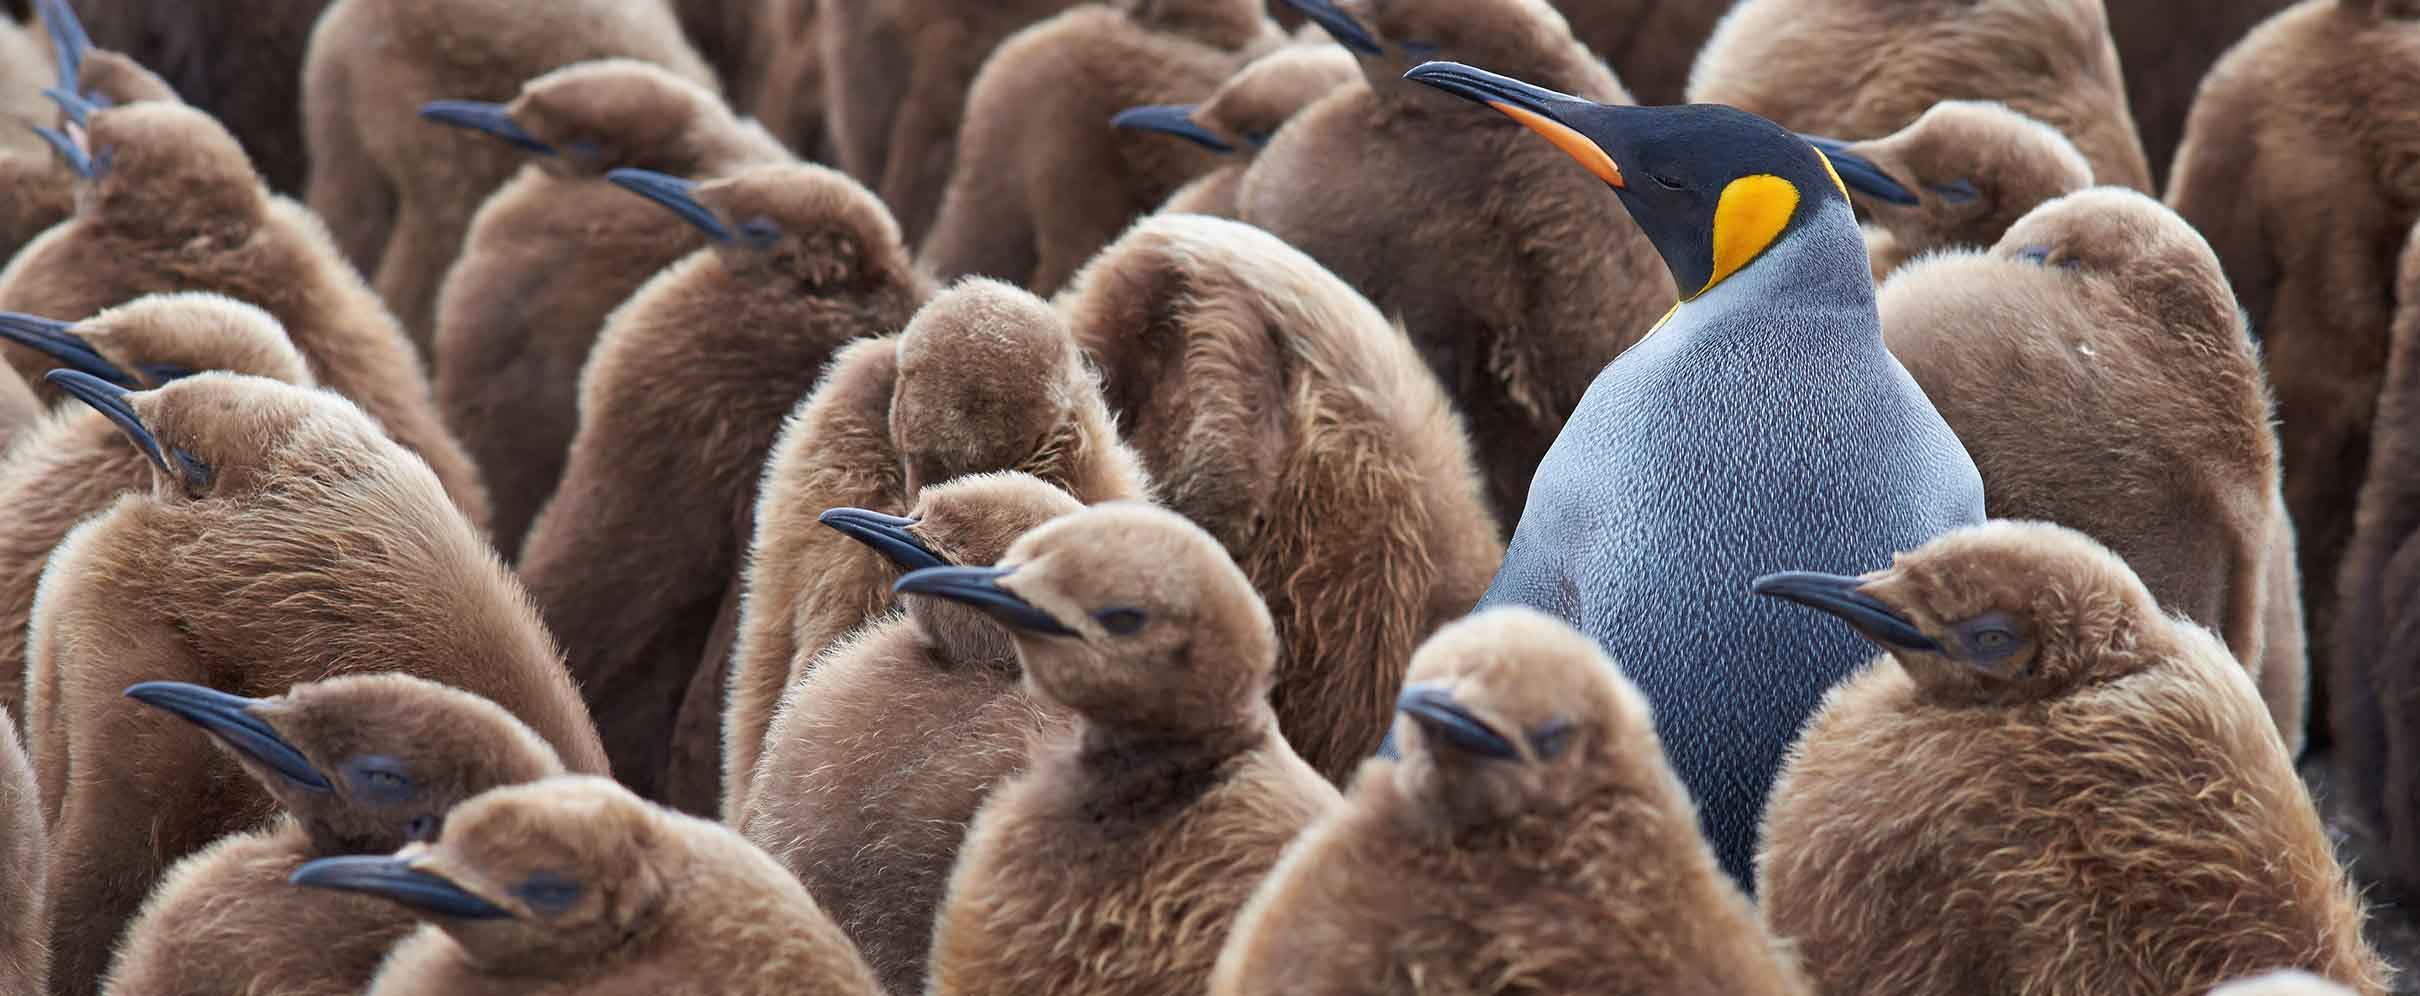 A gray and black penguin stands out from a group of brown penguins.